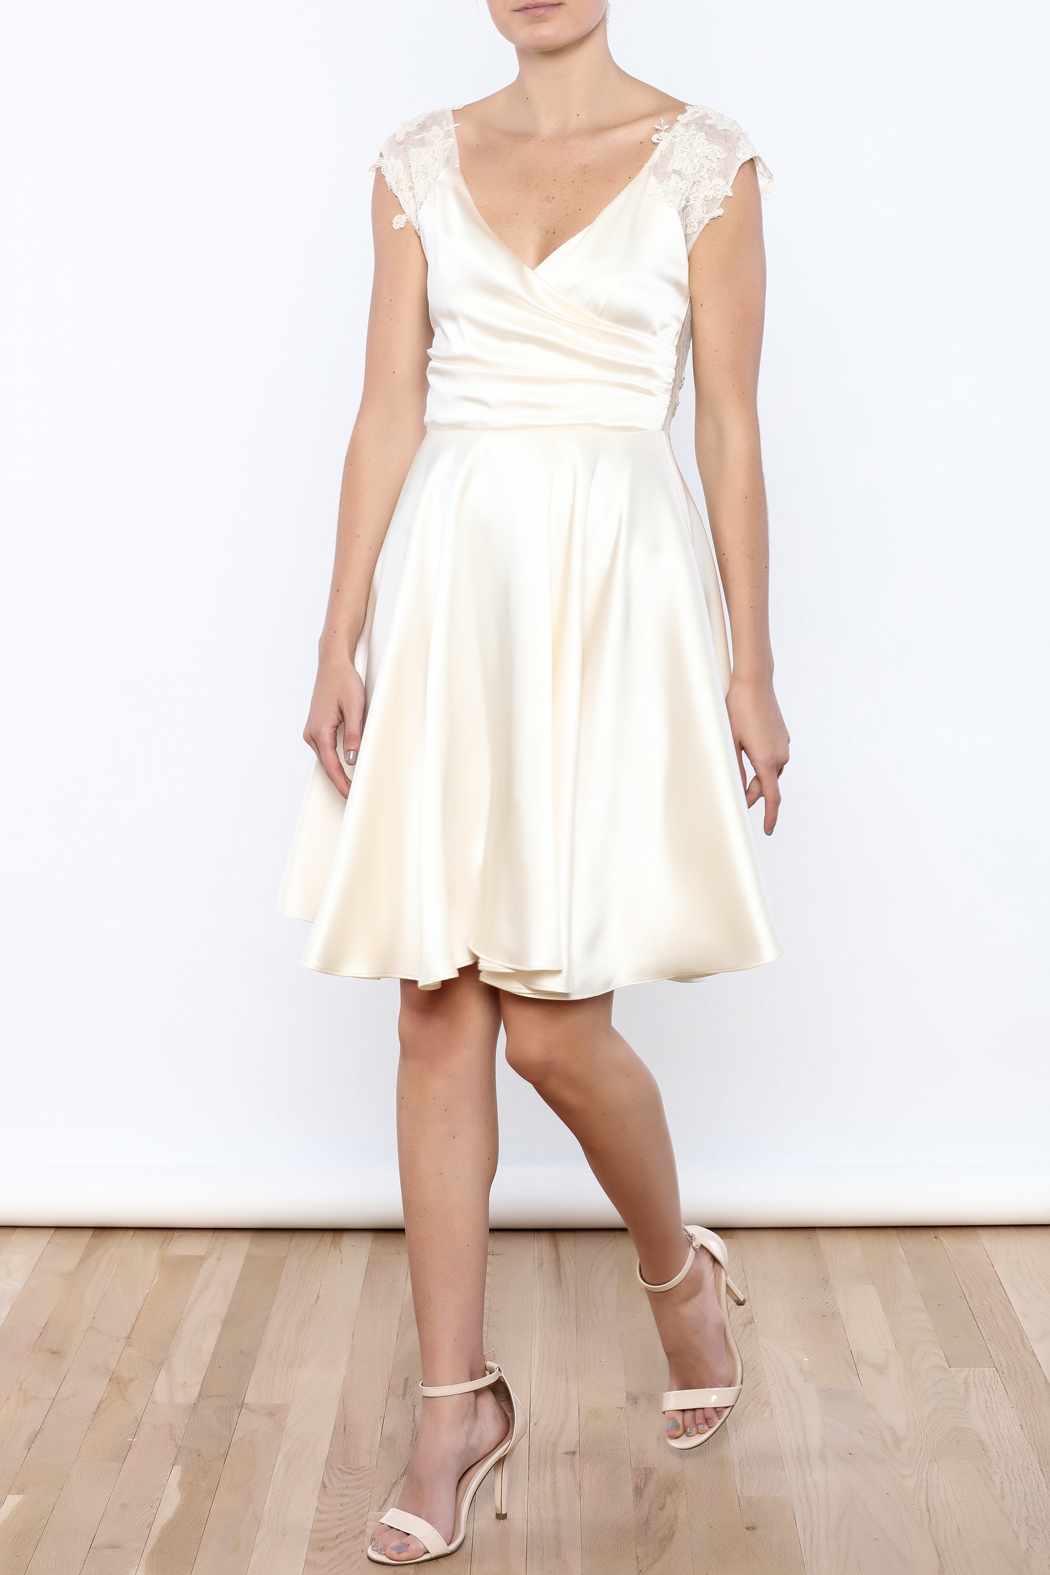 Stephanie D Couture Sebrina Dress - Front Full Image